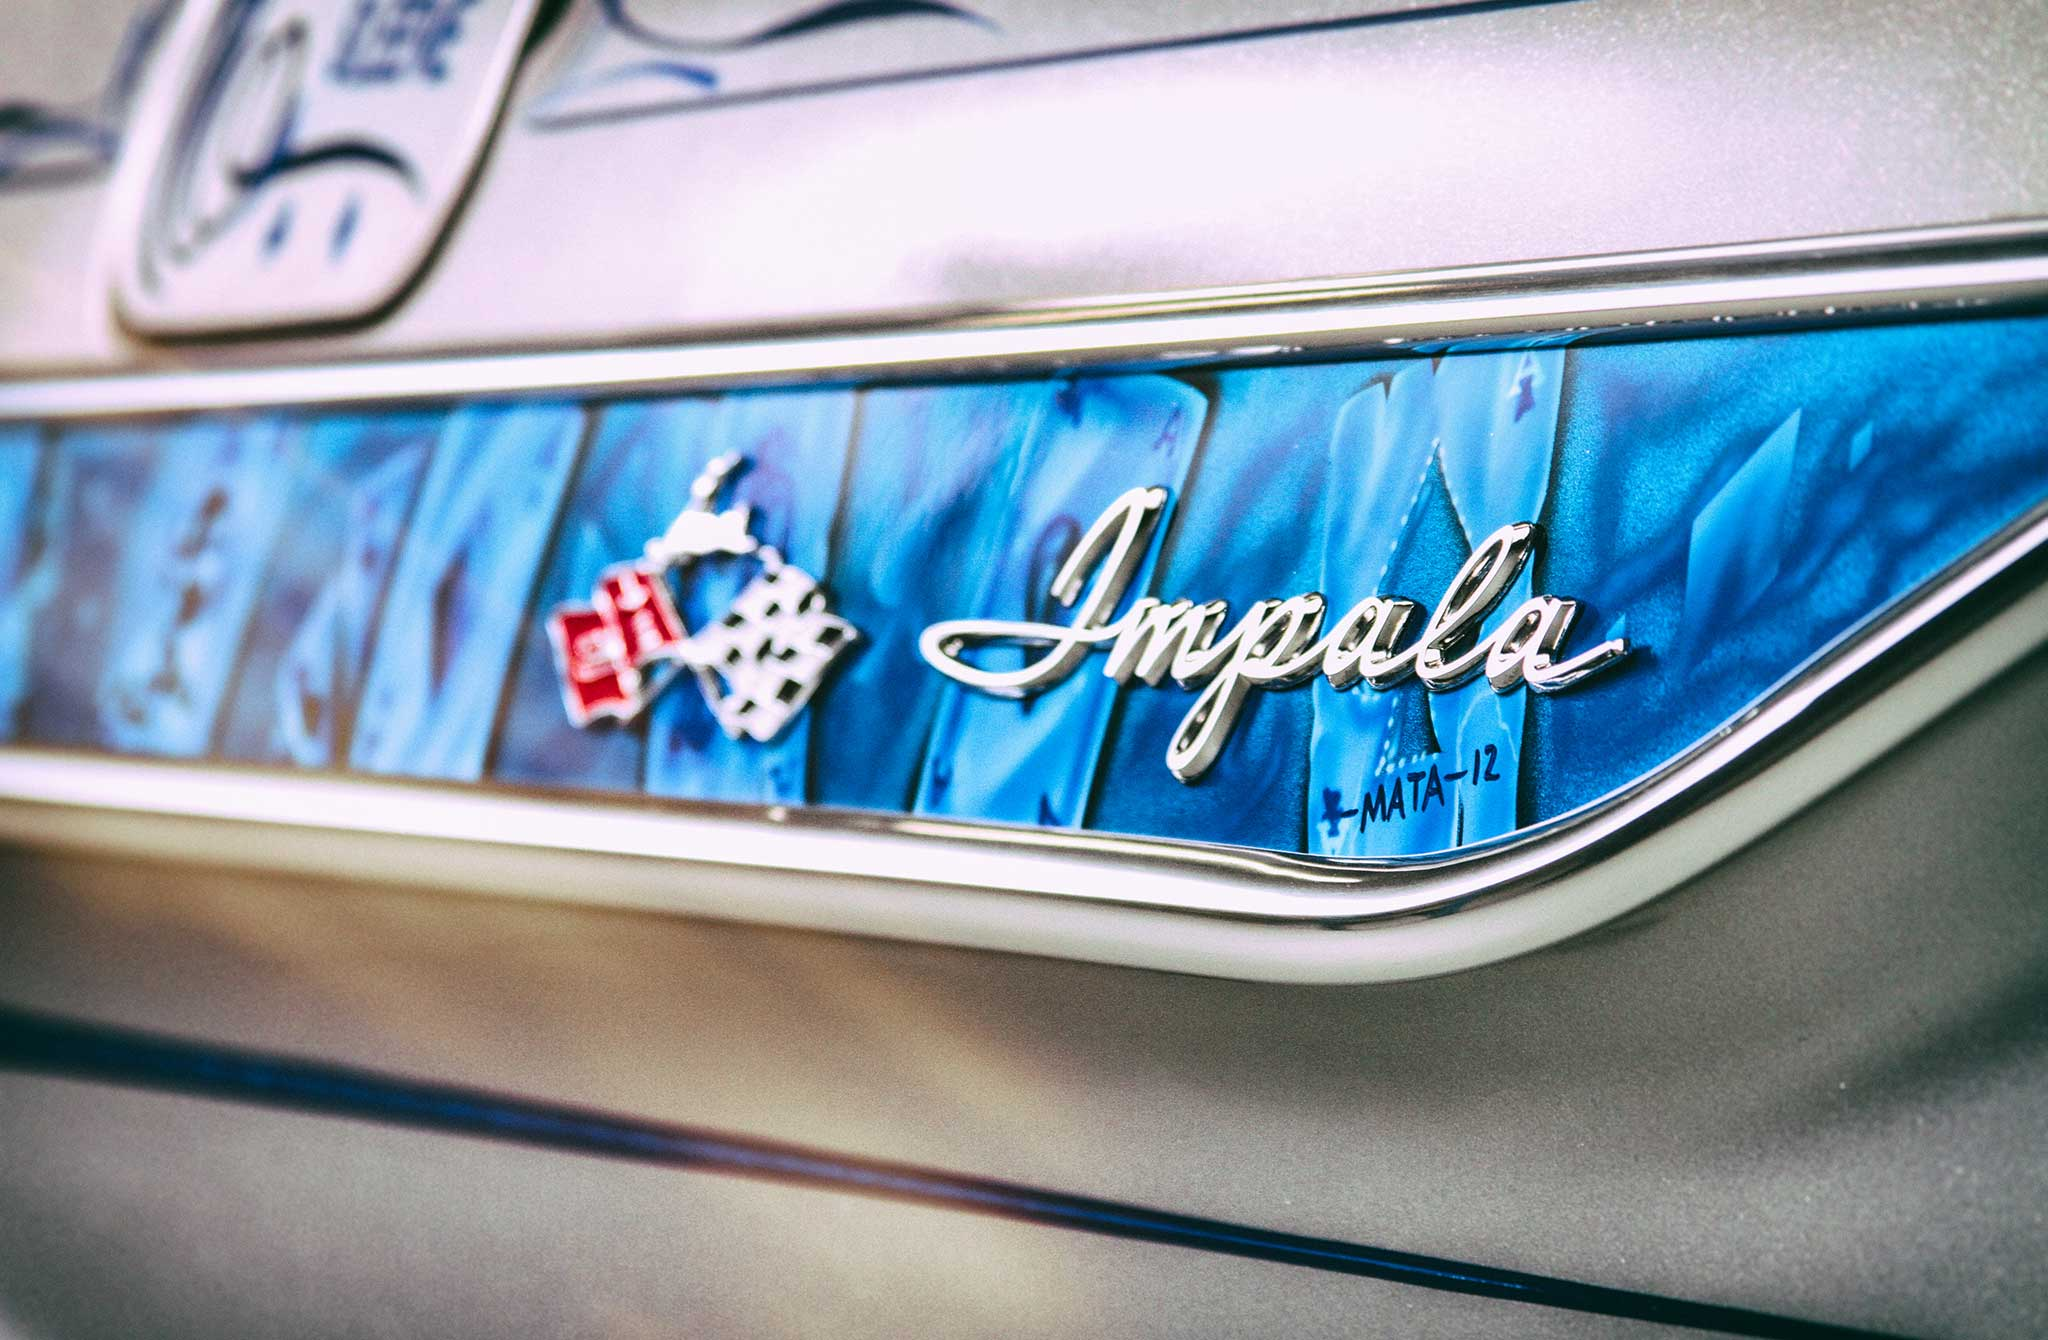 1961 chevrolet impala convertible side quarter panel badge 009